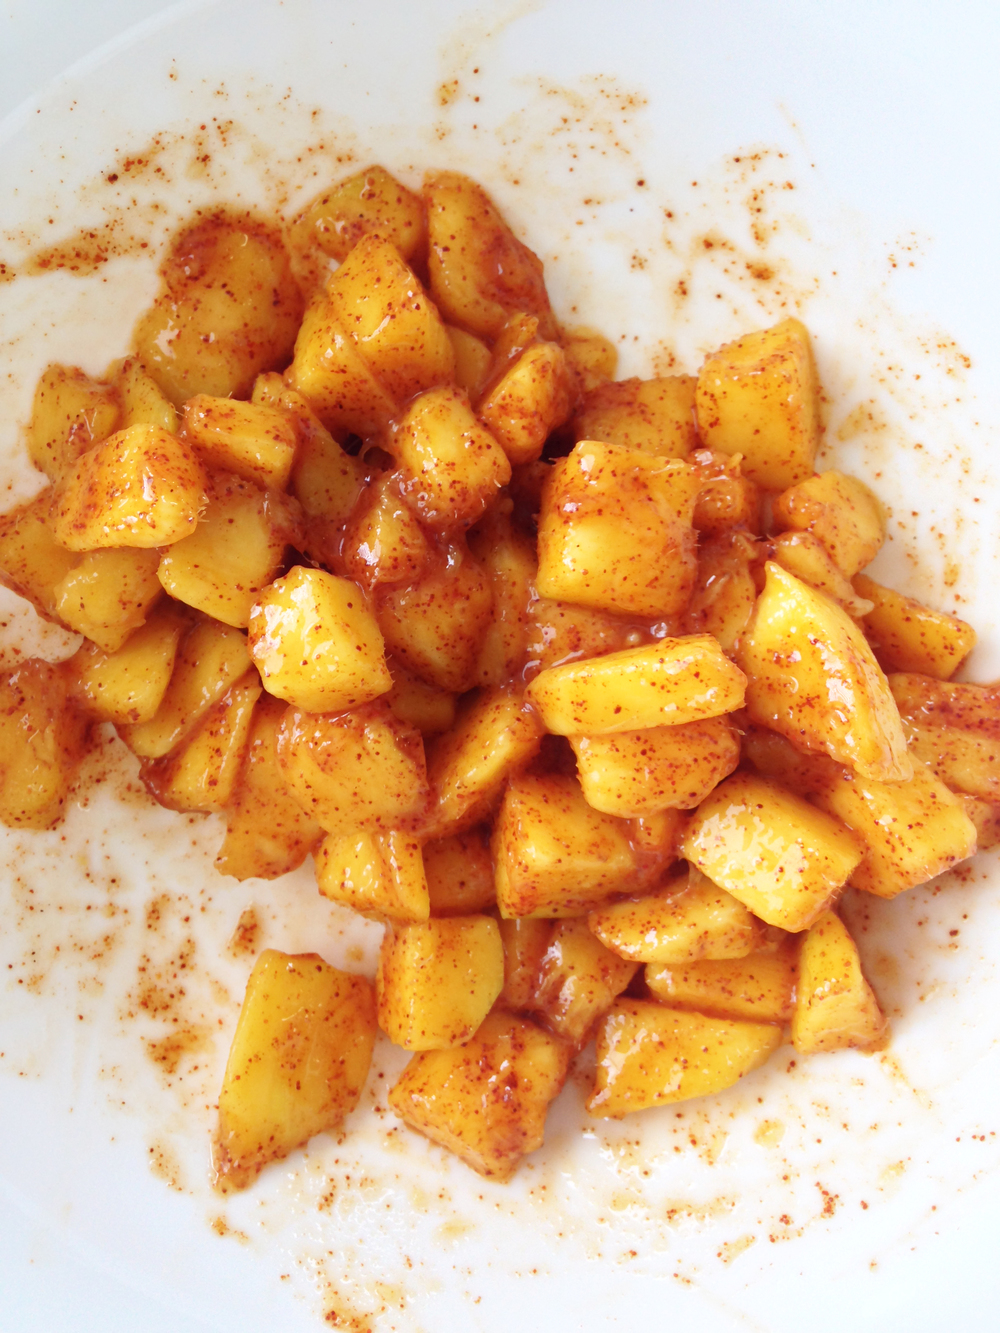 Combine 1/3 of the cubed mango in a small bowl with 1/2 tsp. of the ...